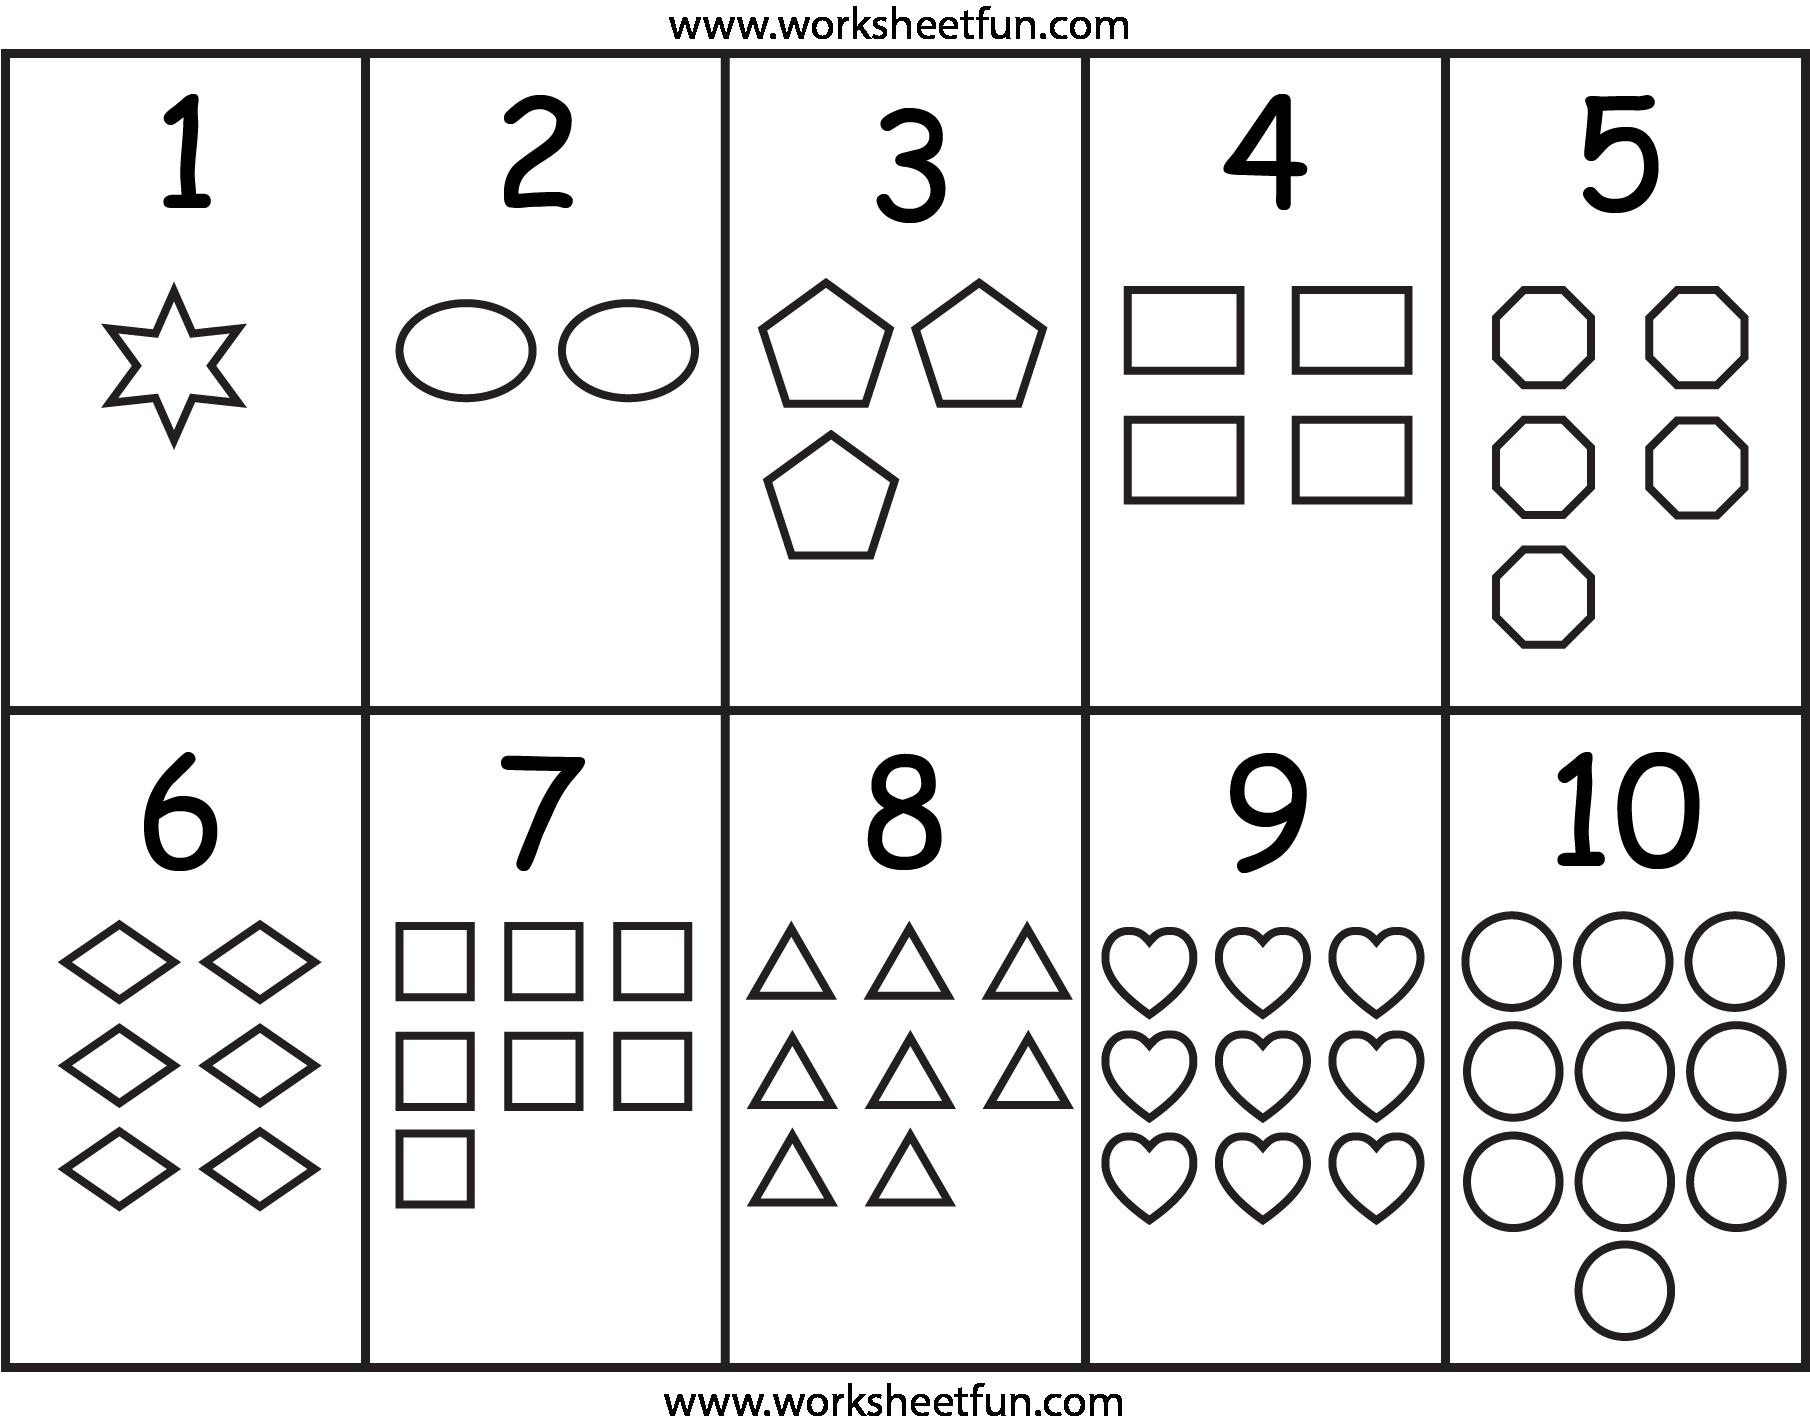 Preschool Counting Worksheets 1-5